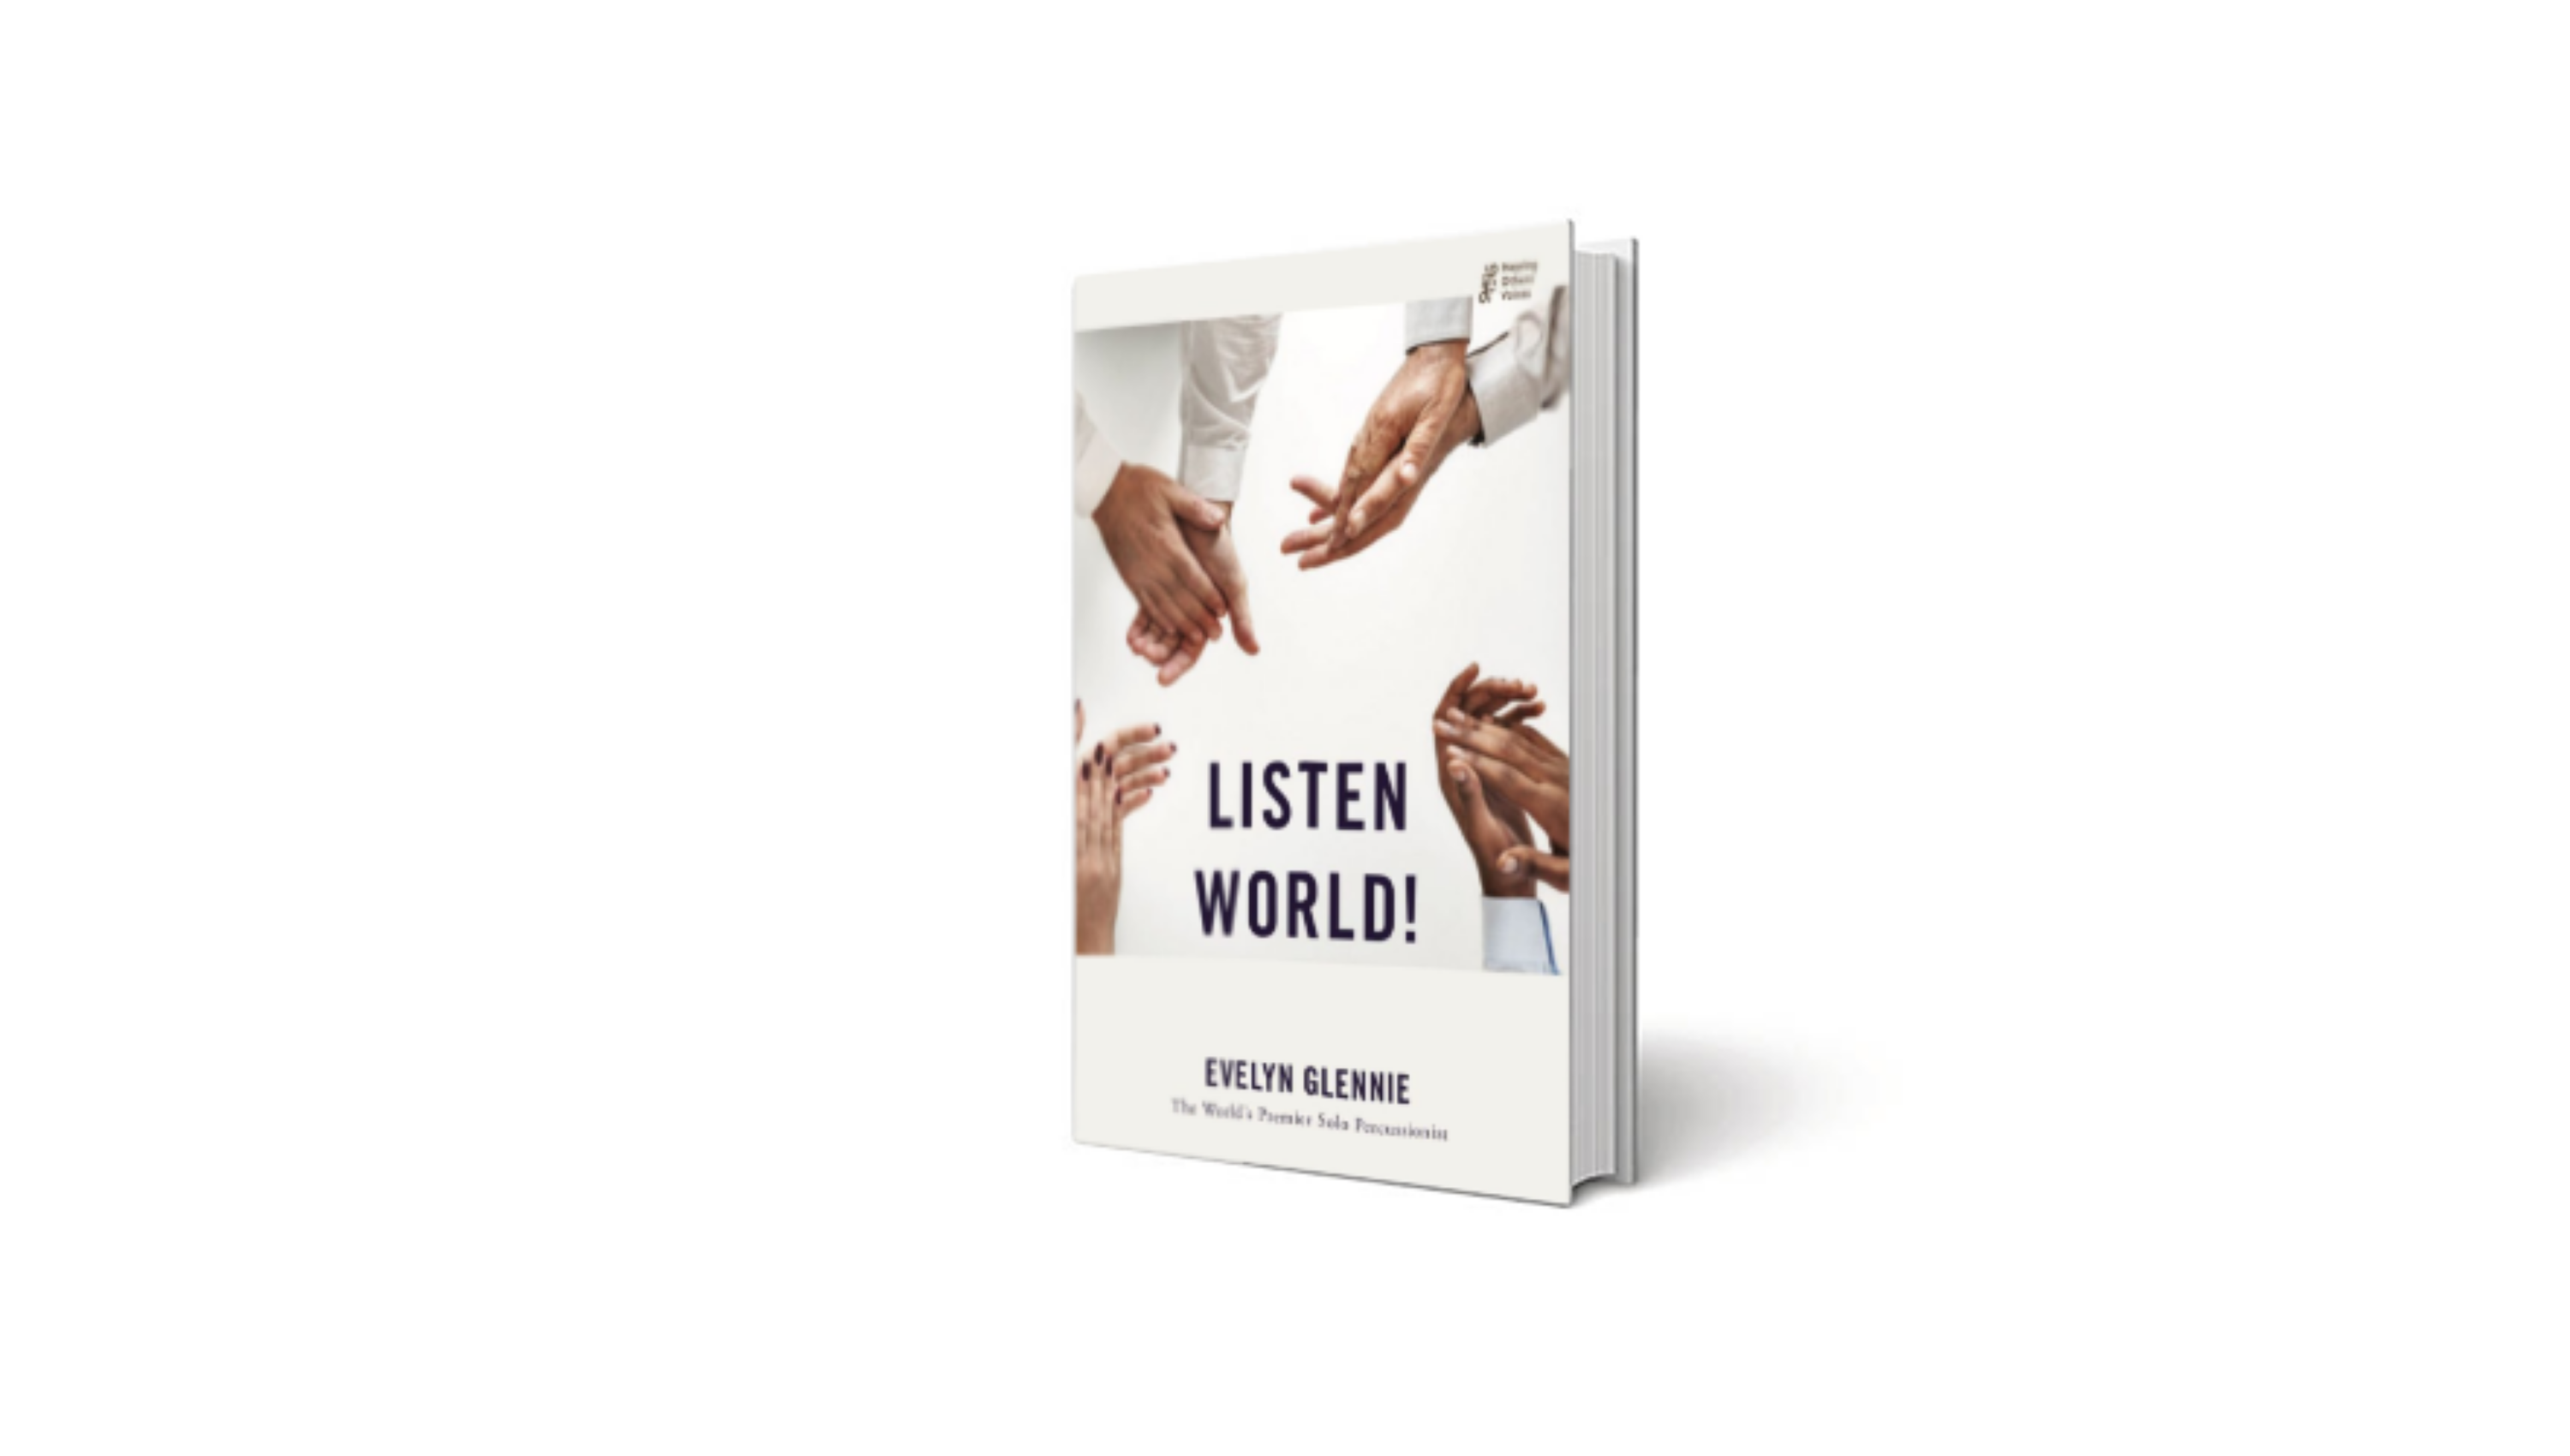 Listen World! Book